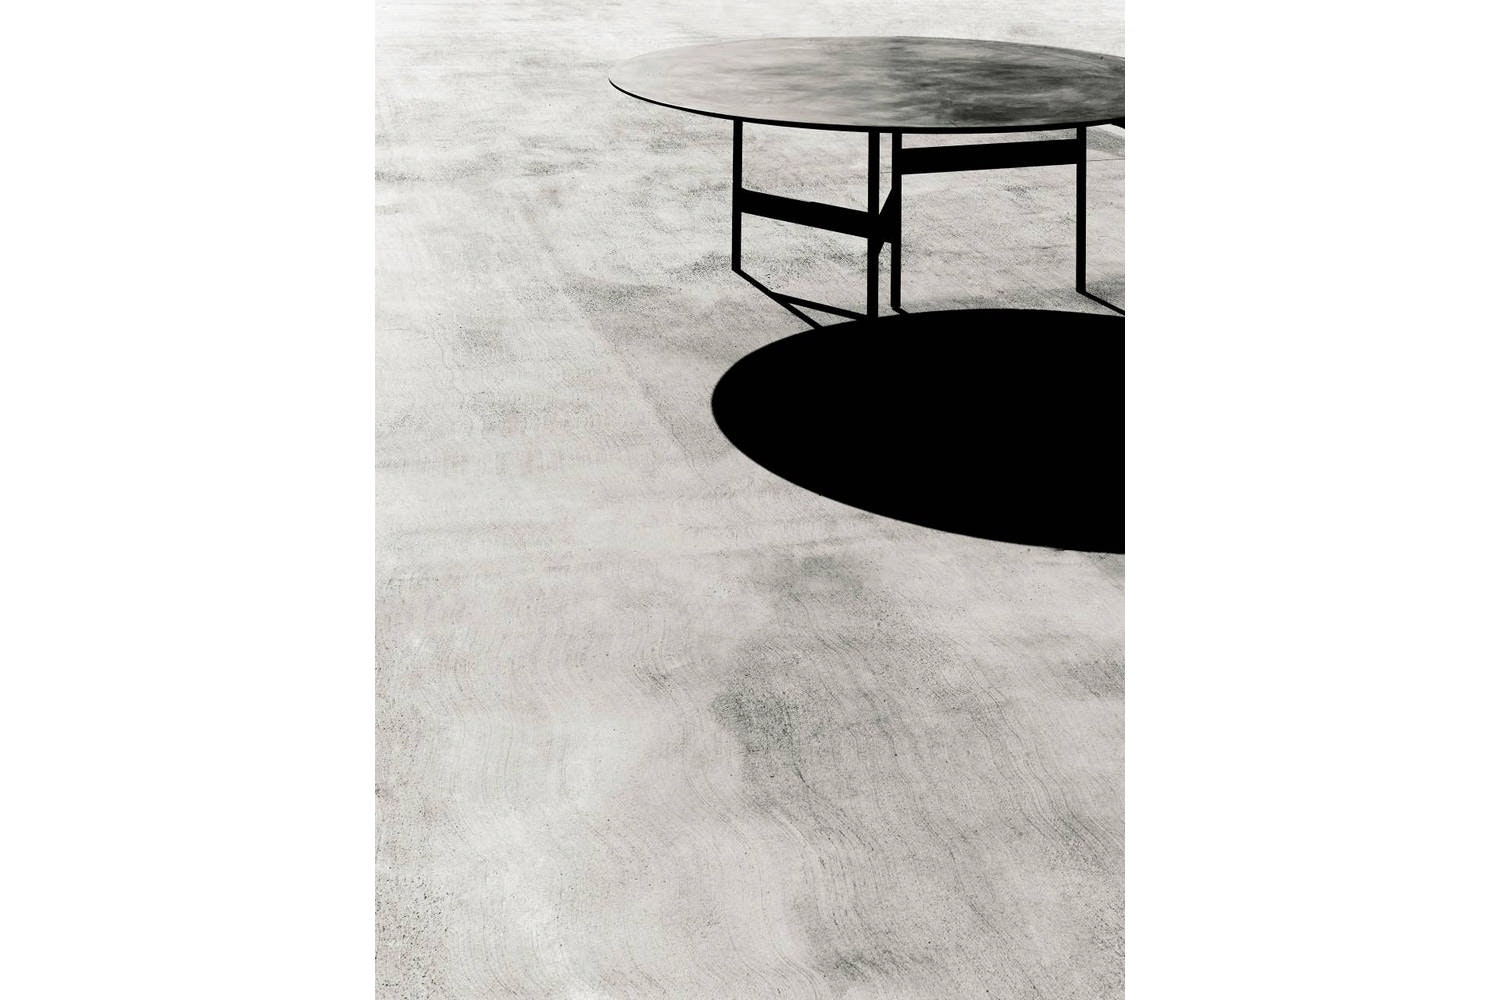 Notes Outdoor Table by Massimo Mariani for Living Divani